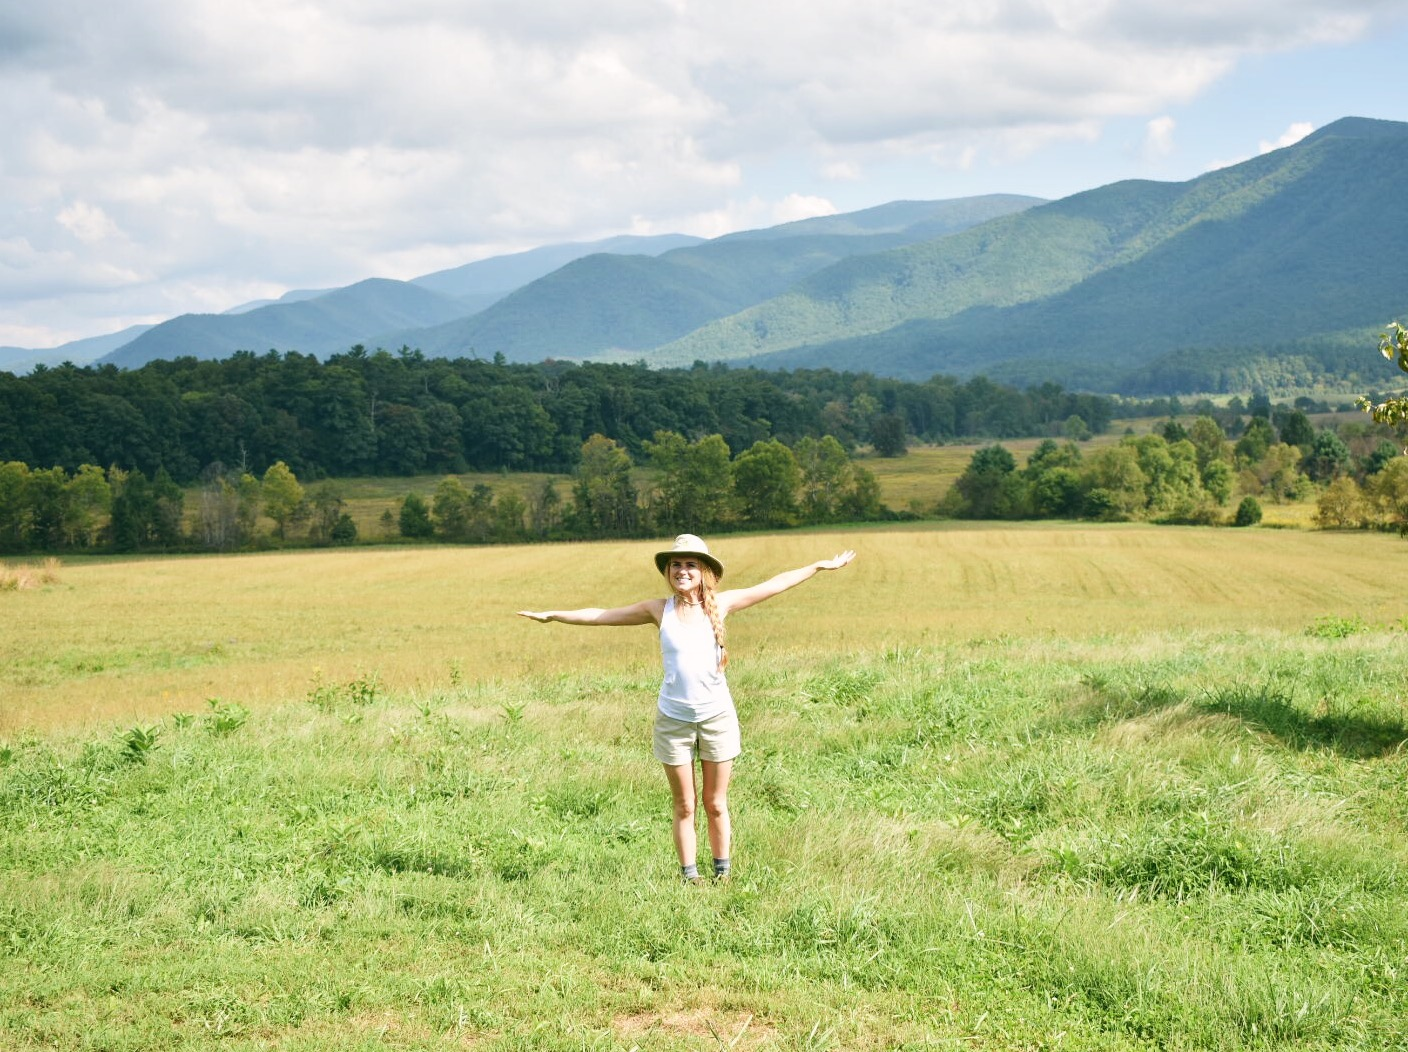 A Drive Through Cades Cove in Great Smoky Mountains National Park